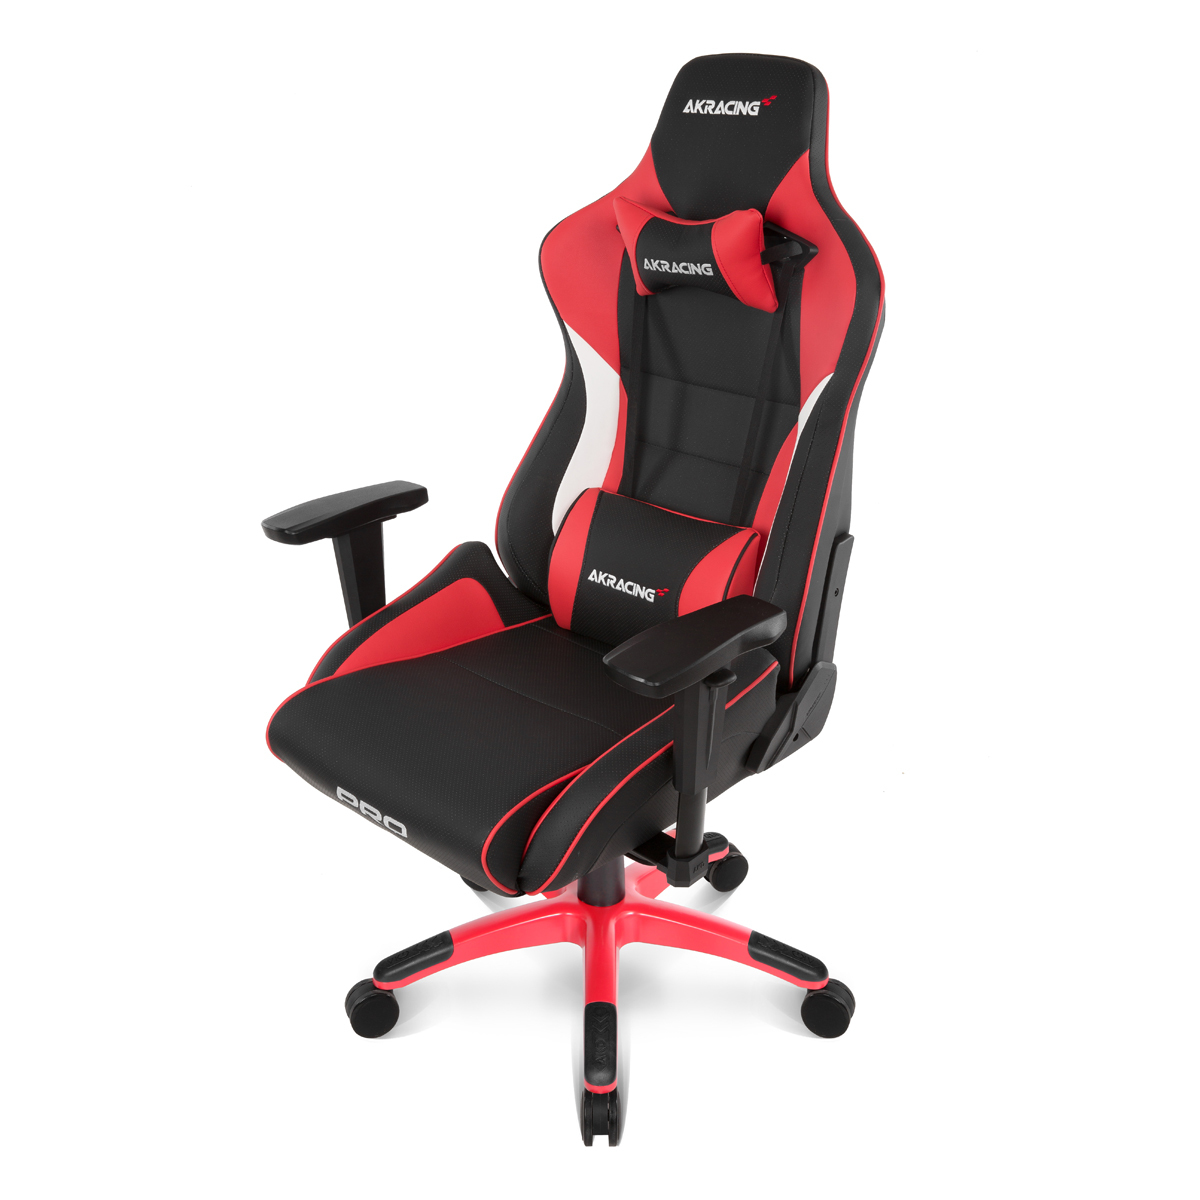 Gaming Stühle Tester Gesucht Akracing Pro Red Gaming Stuhl